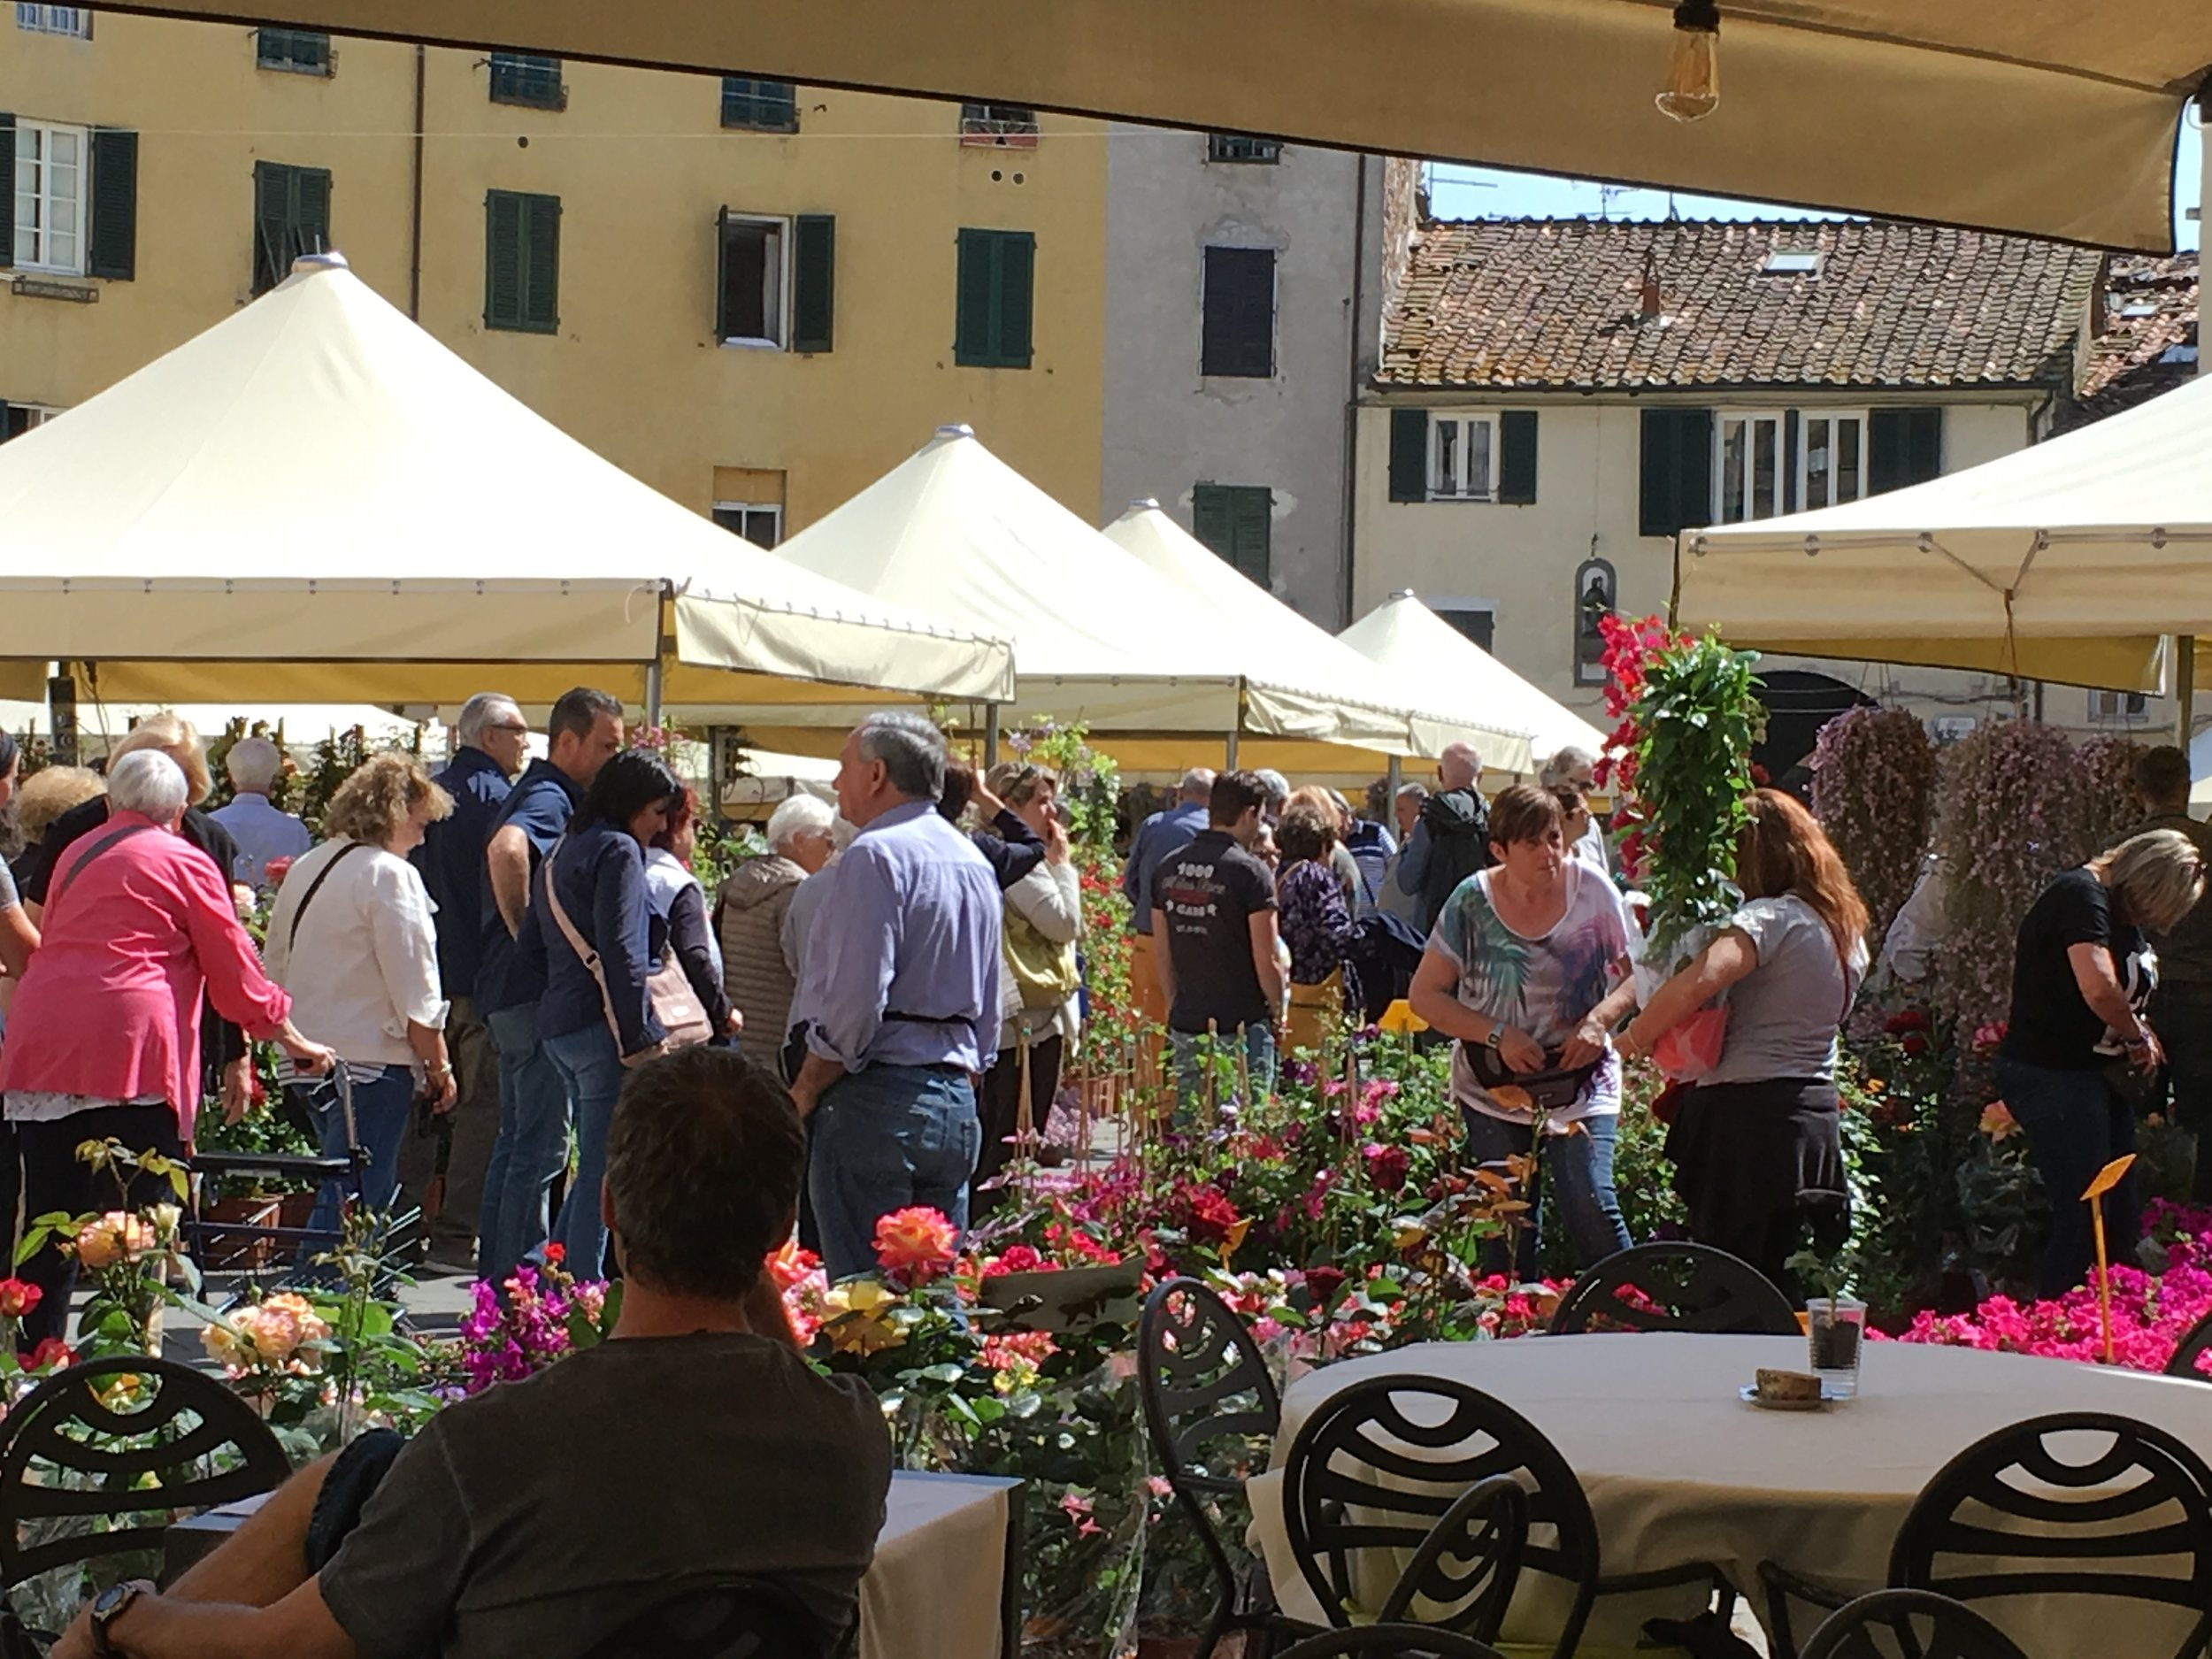 Flower market (2018) in Piazza Anfiteatro for the Festa di Santa Zita